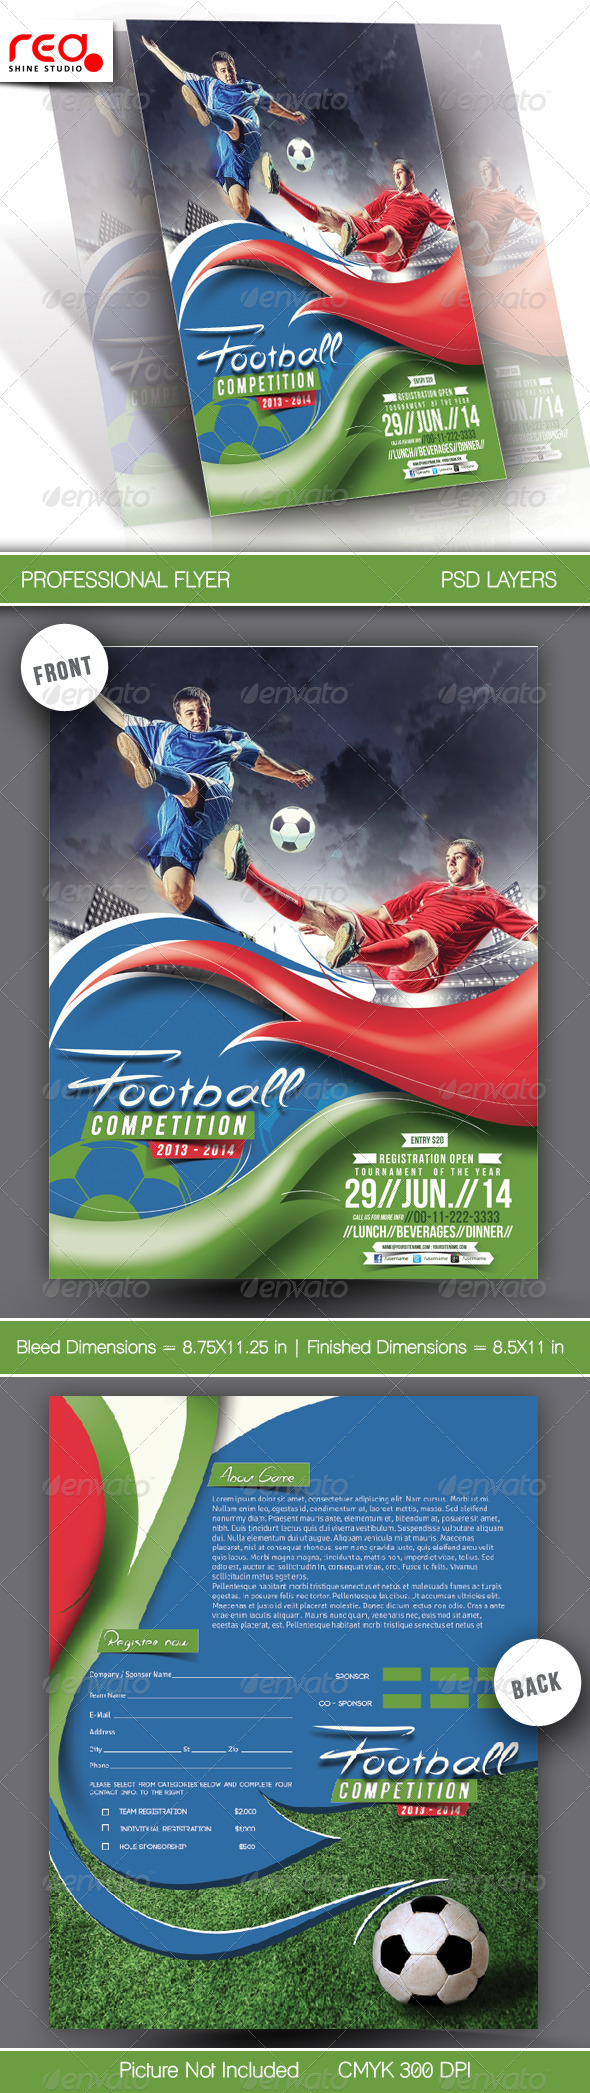 Football Competitions Flyer Template - Sports Events